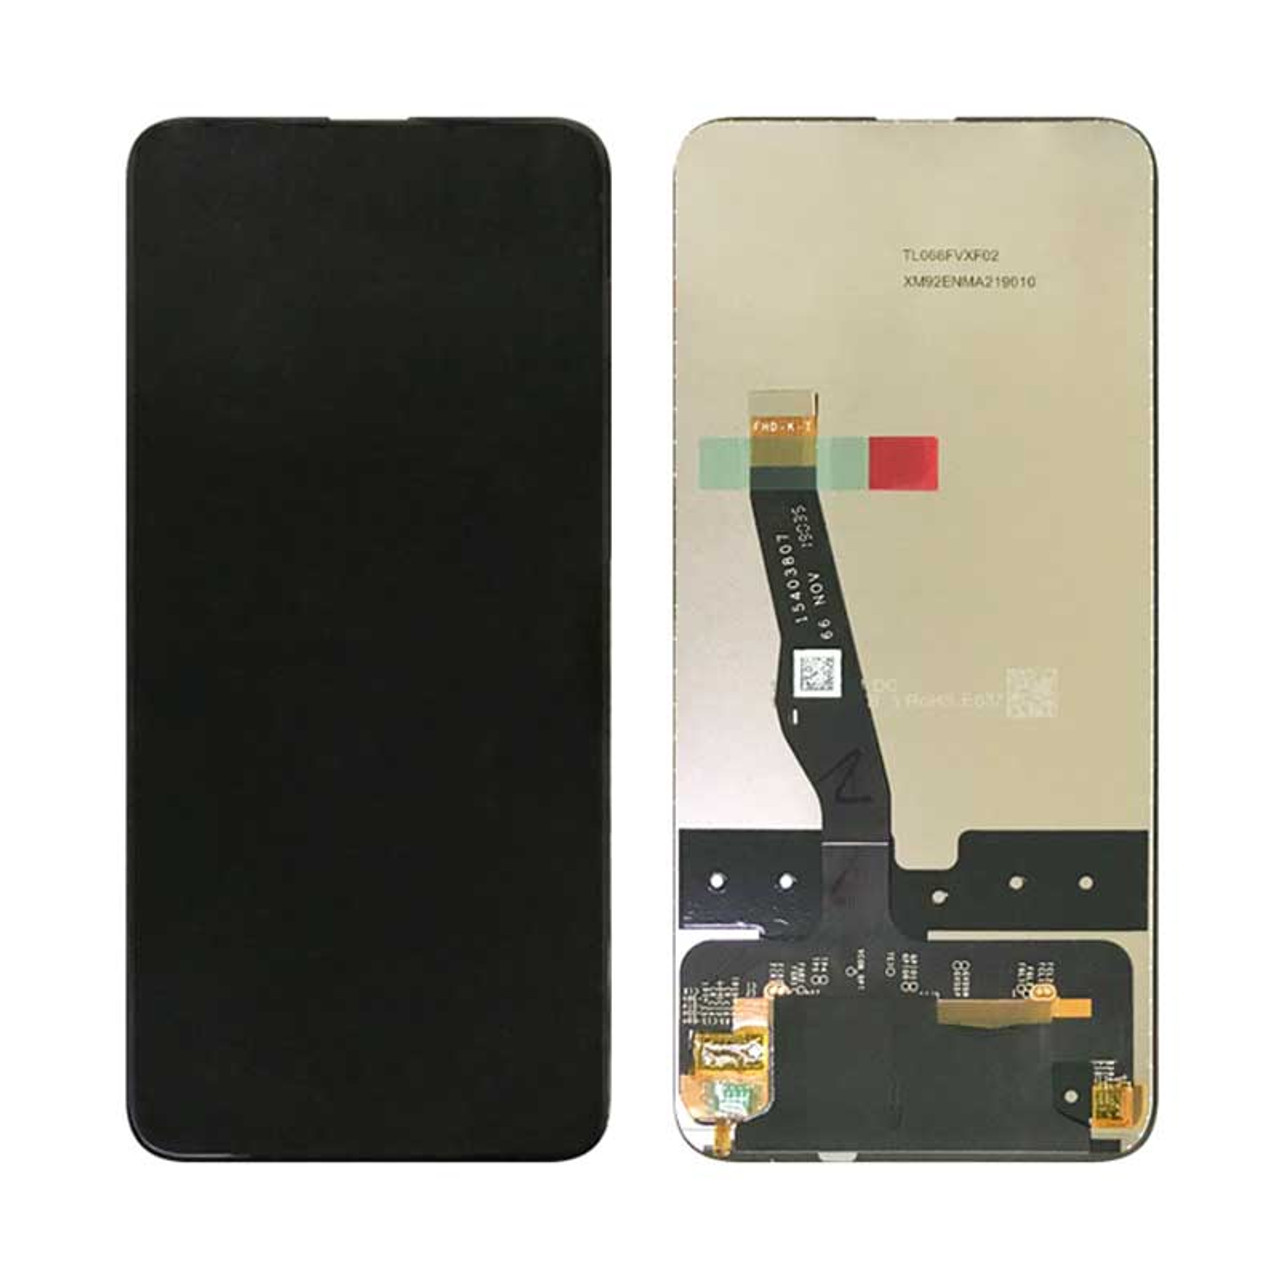 Huawei Y9 Prime 2019 P Smart Z Screen Ssembly Parts4repair Com Huawei y9 prime (2019) android smartphone. huawei y9 prime 2019 p smart z lcd screen digitizer assembly